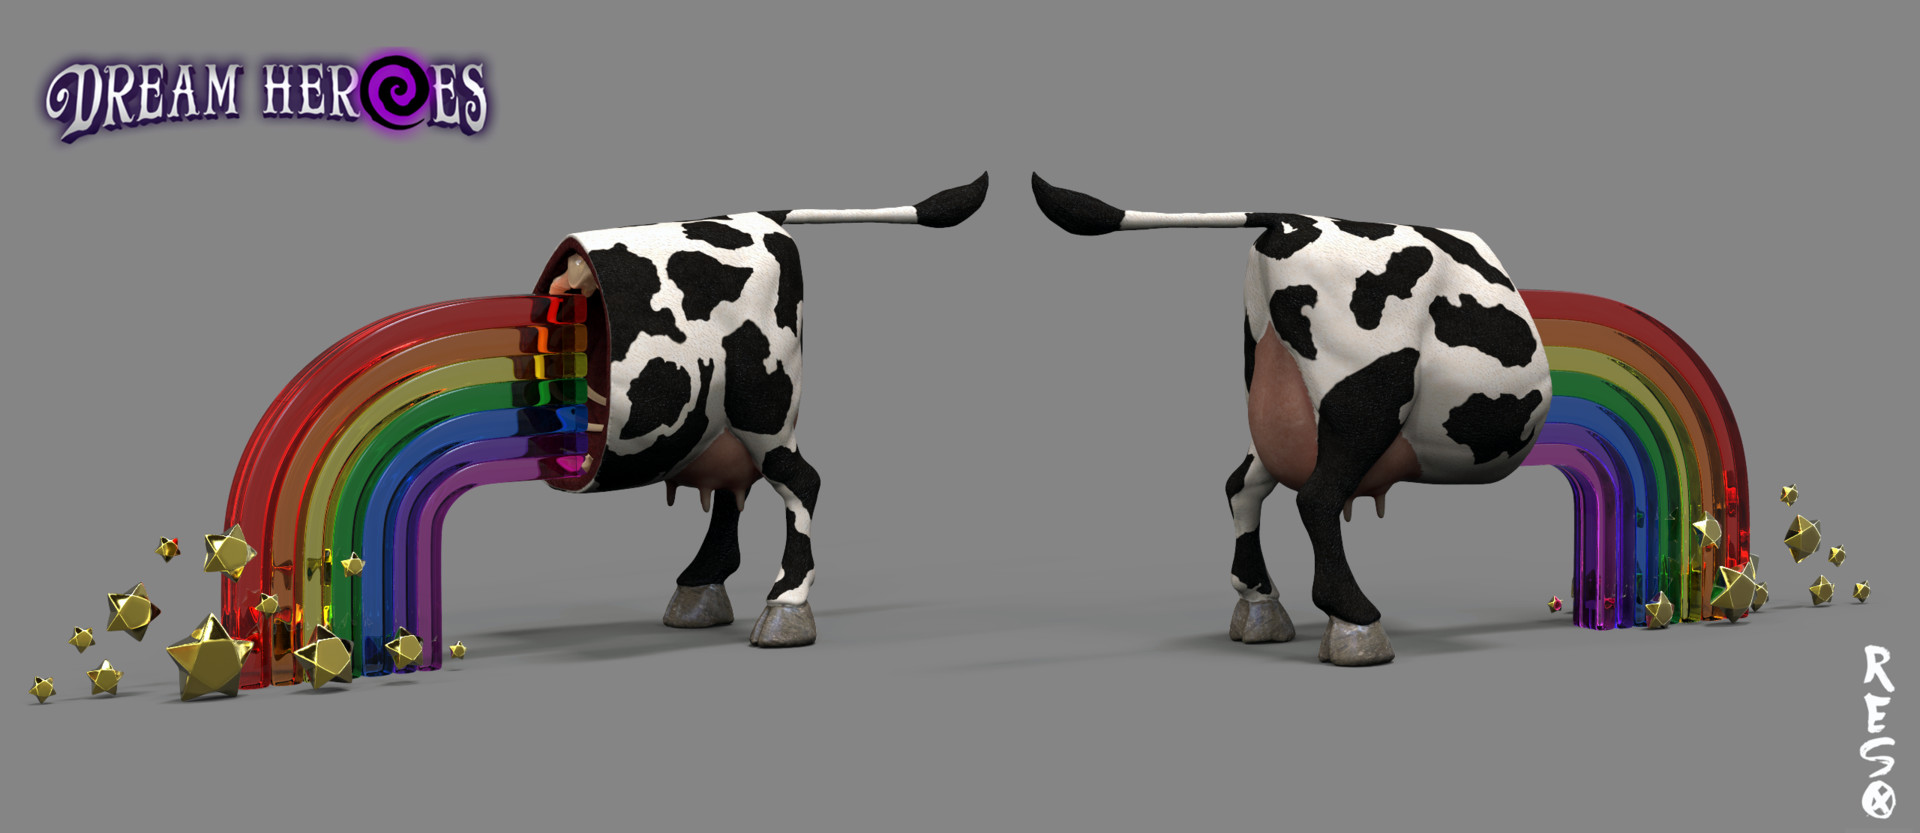 Raul eduardo sanchez osorio happy cow